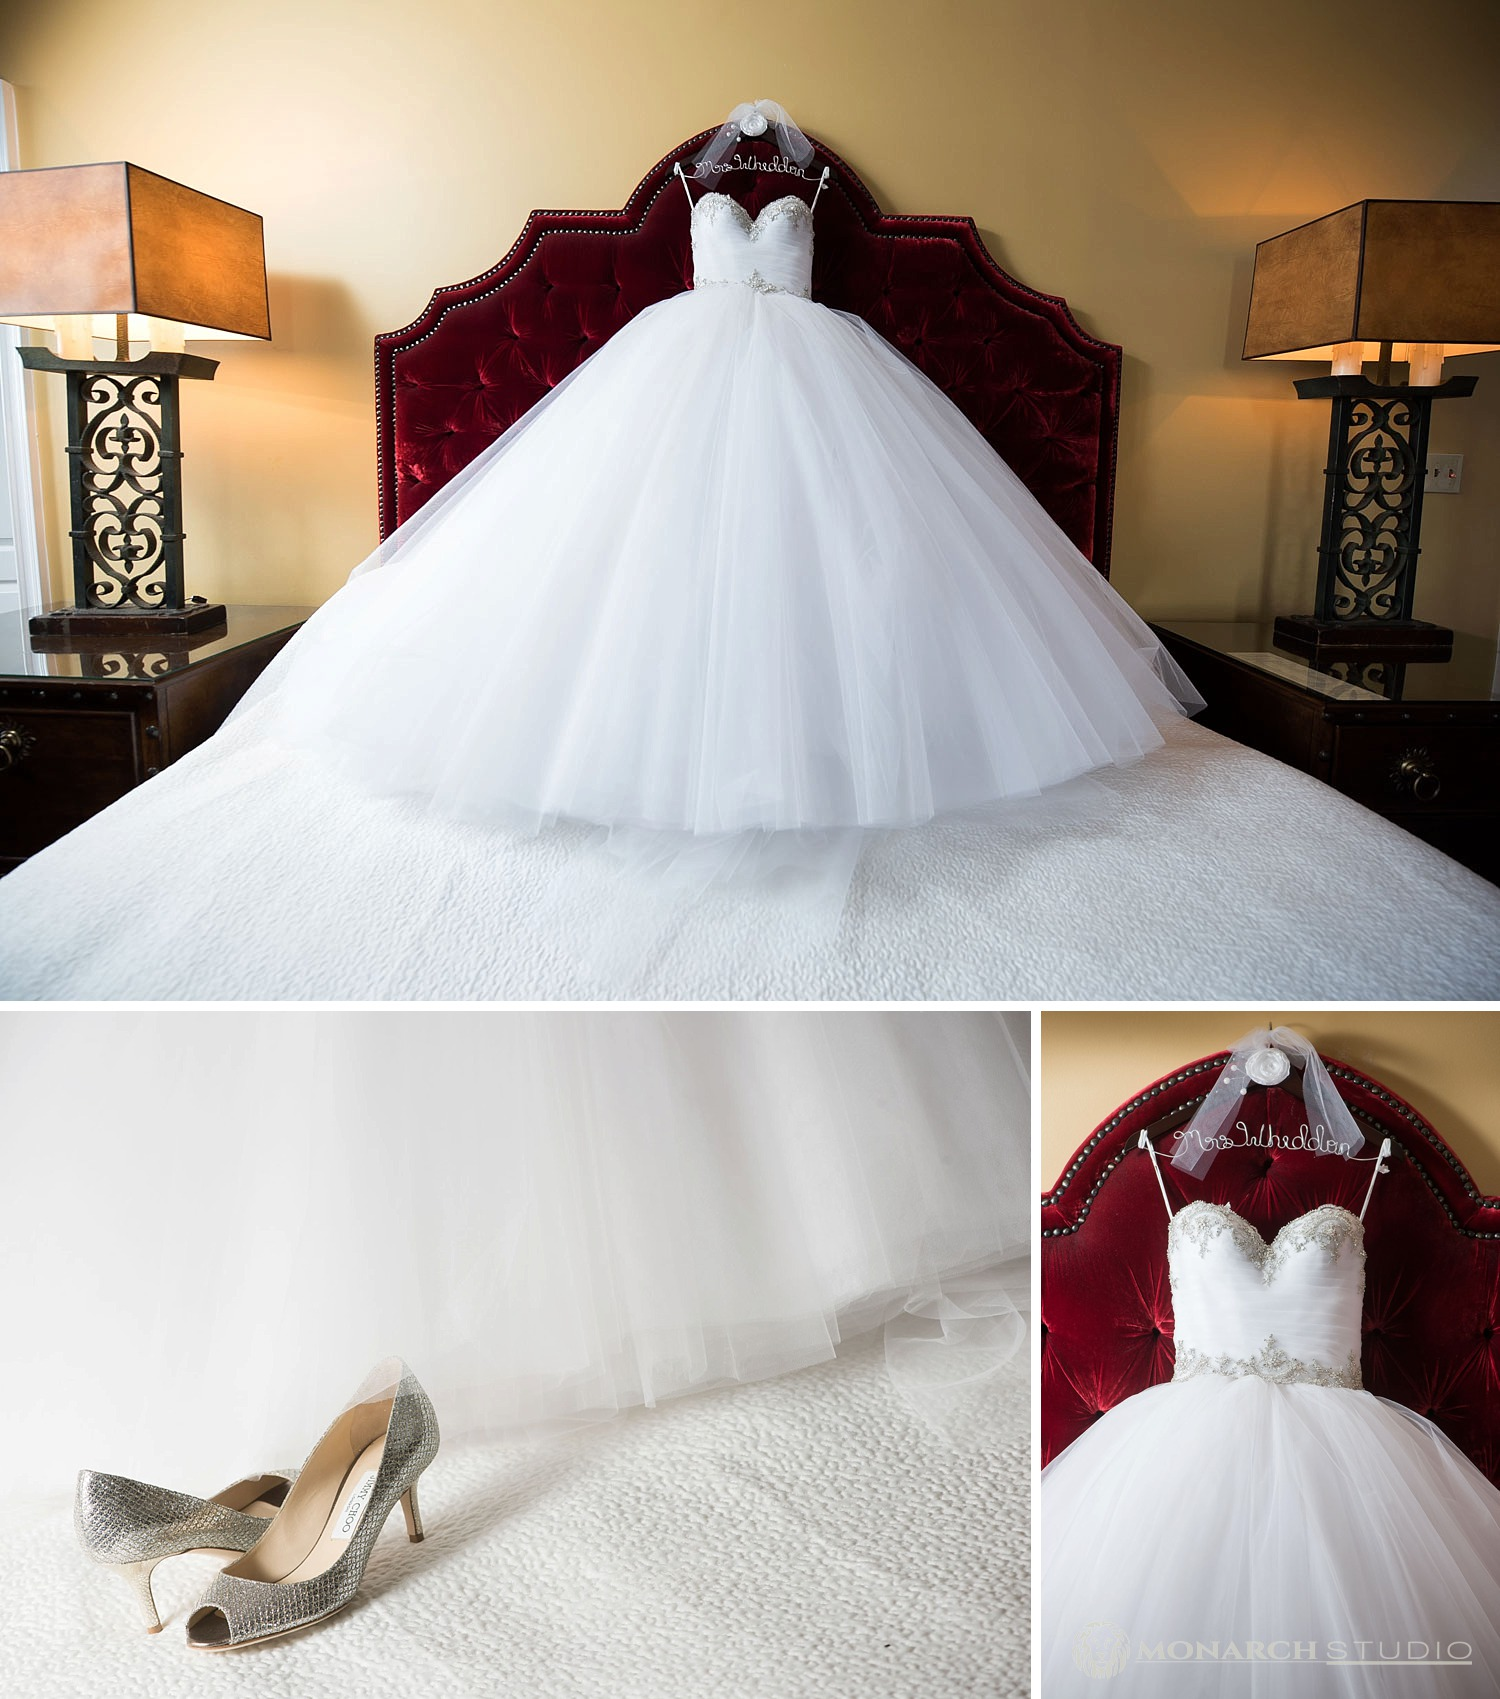 Kleinfeld-Wedding-Dress-Photo-St-Augustine-Florida.jpg